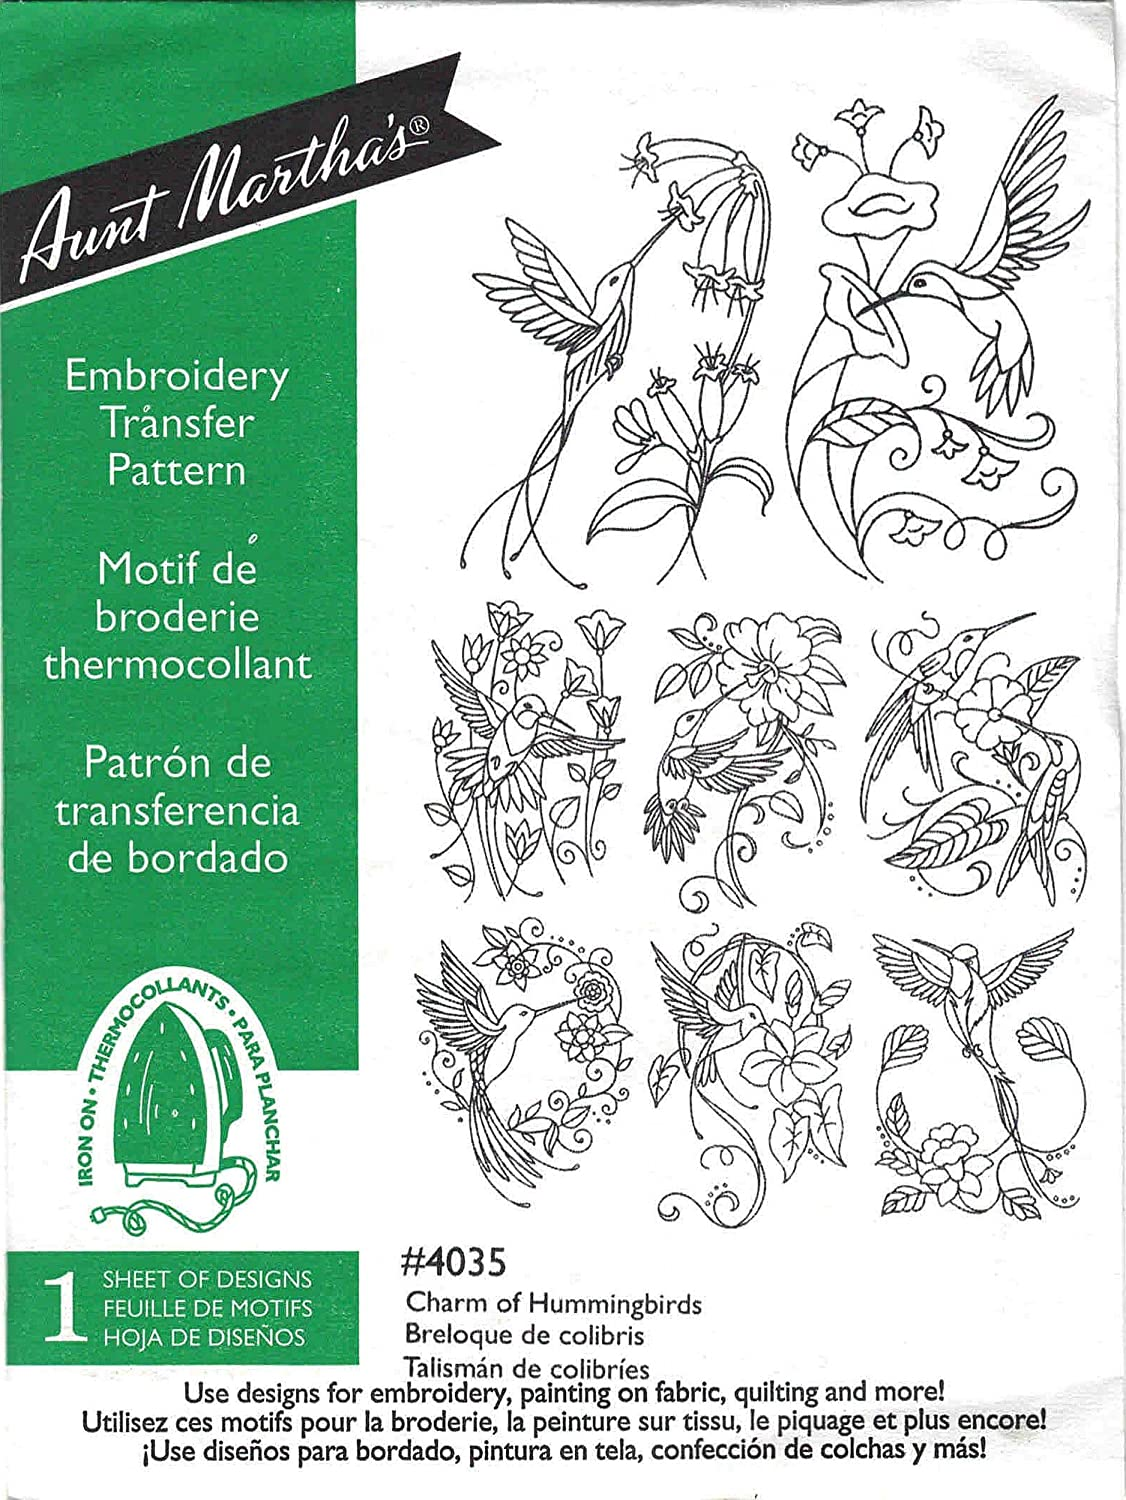 Charm of Hummingbirds Aunt Indianapolis Mall Martha's Transfer Embroidery Hot latest Iron